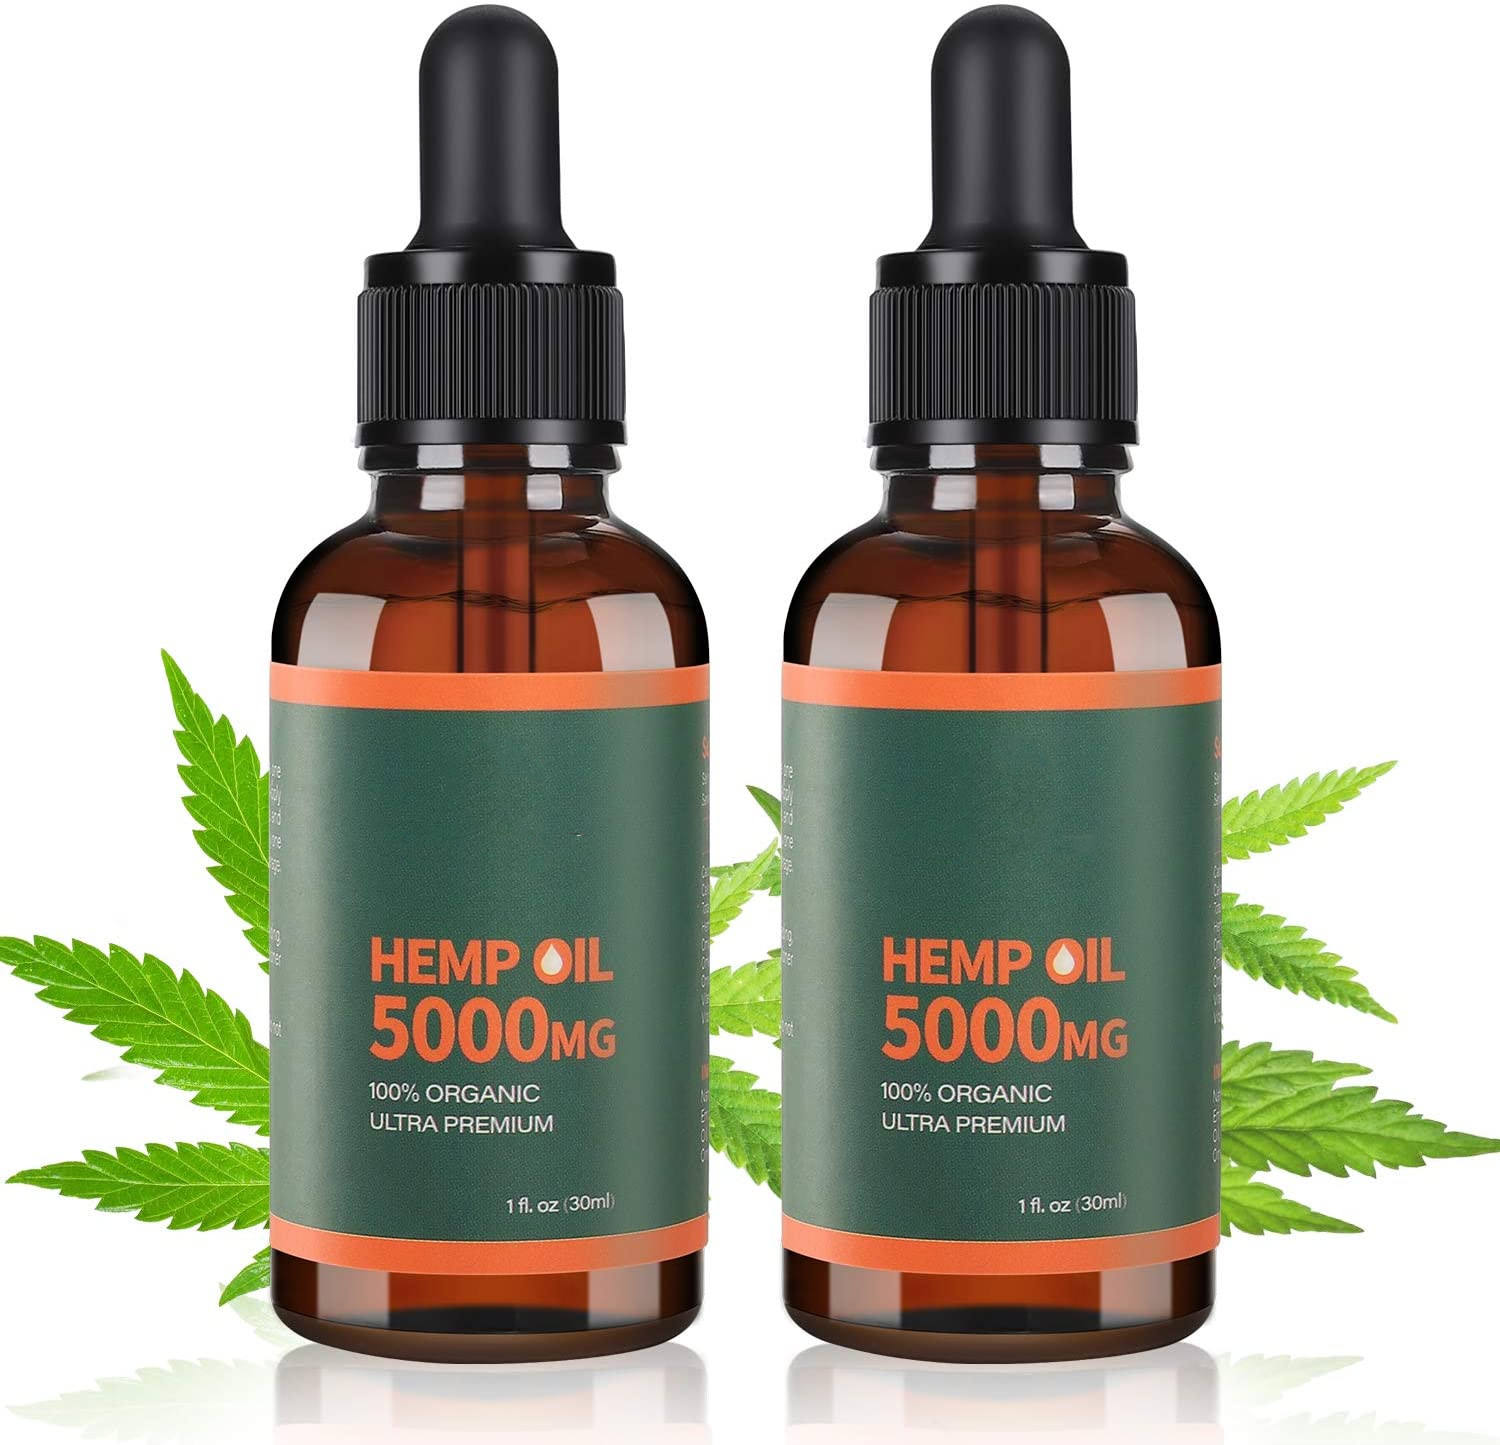 Private Label Minyak Biji Rami Organik Massal Hemp Oil 5000 MG